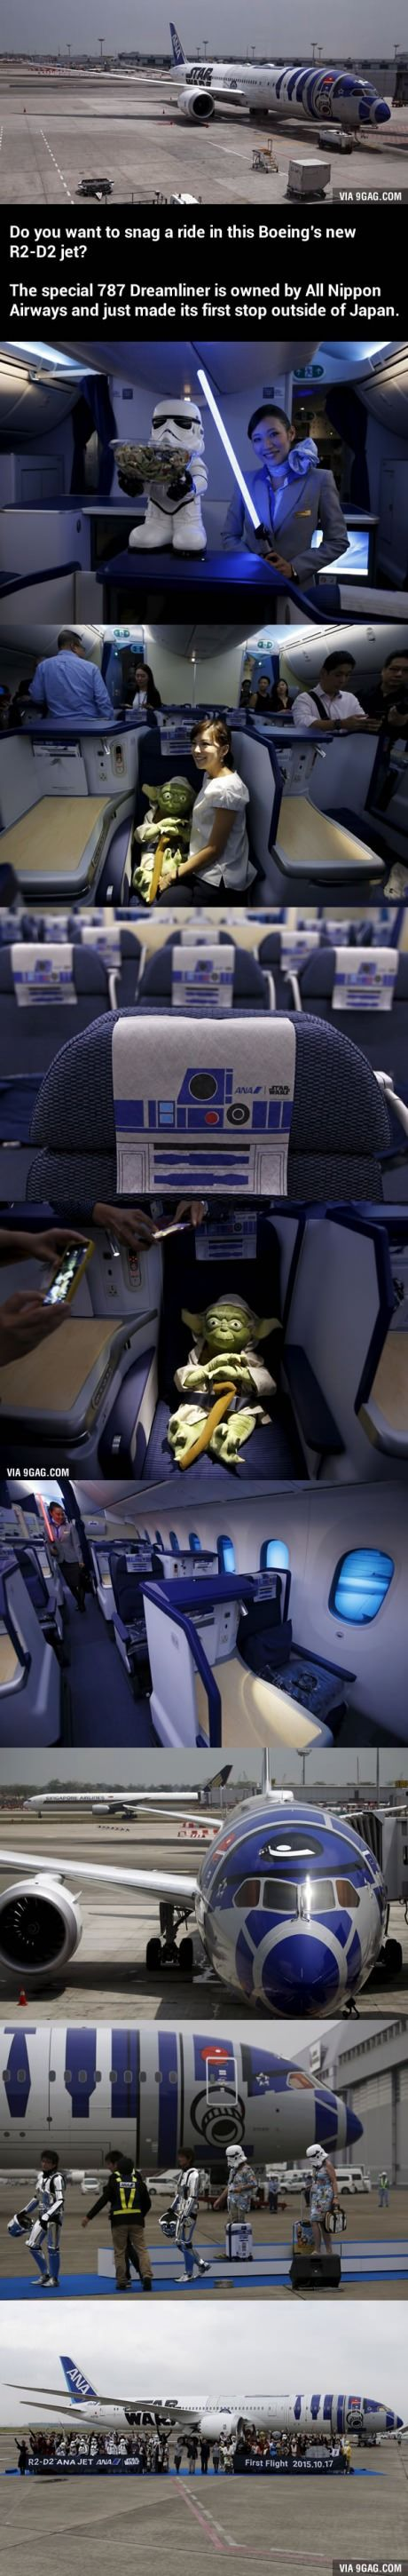 See What It's Like Inside This Star Wars Themed Plane!